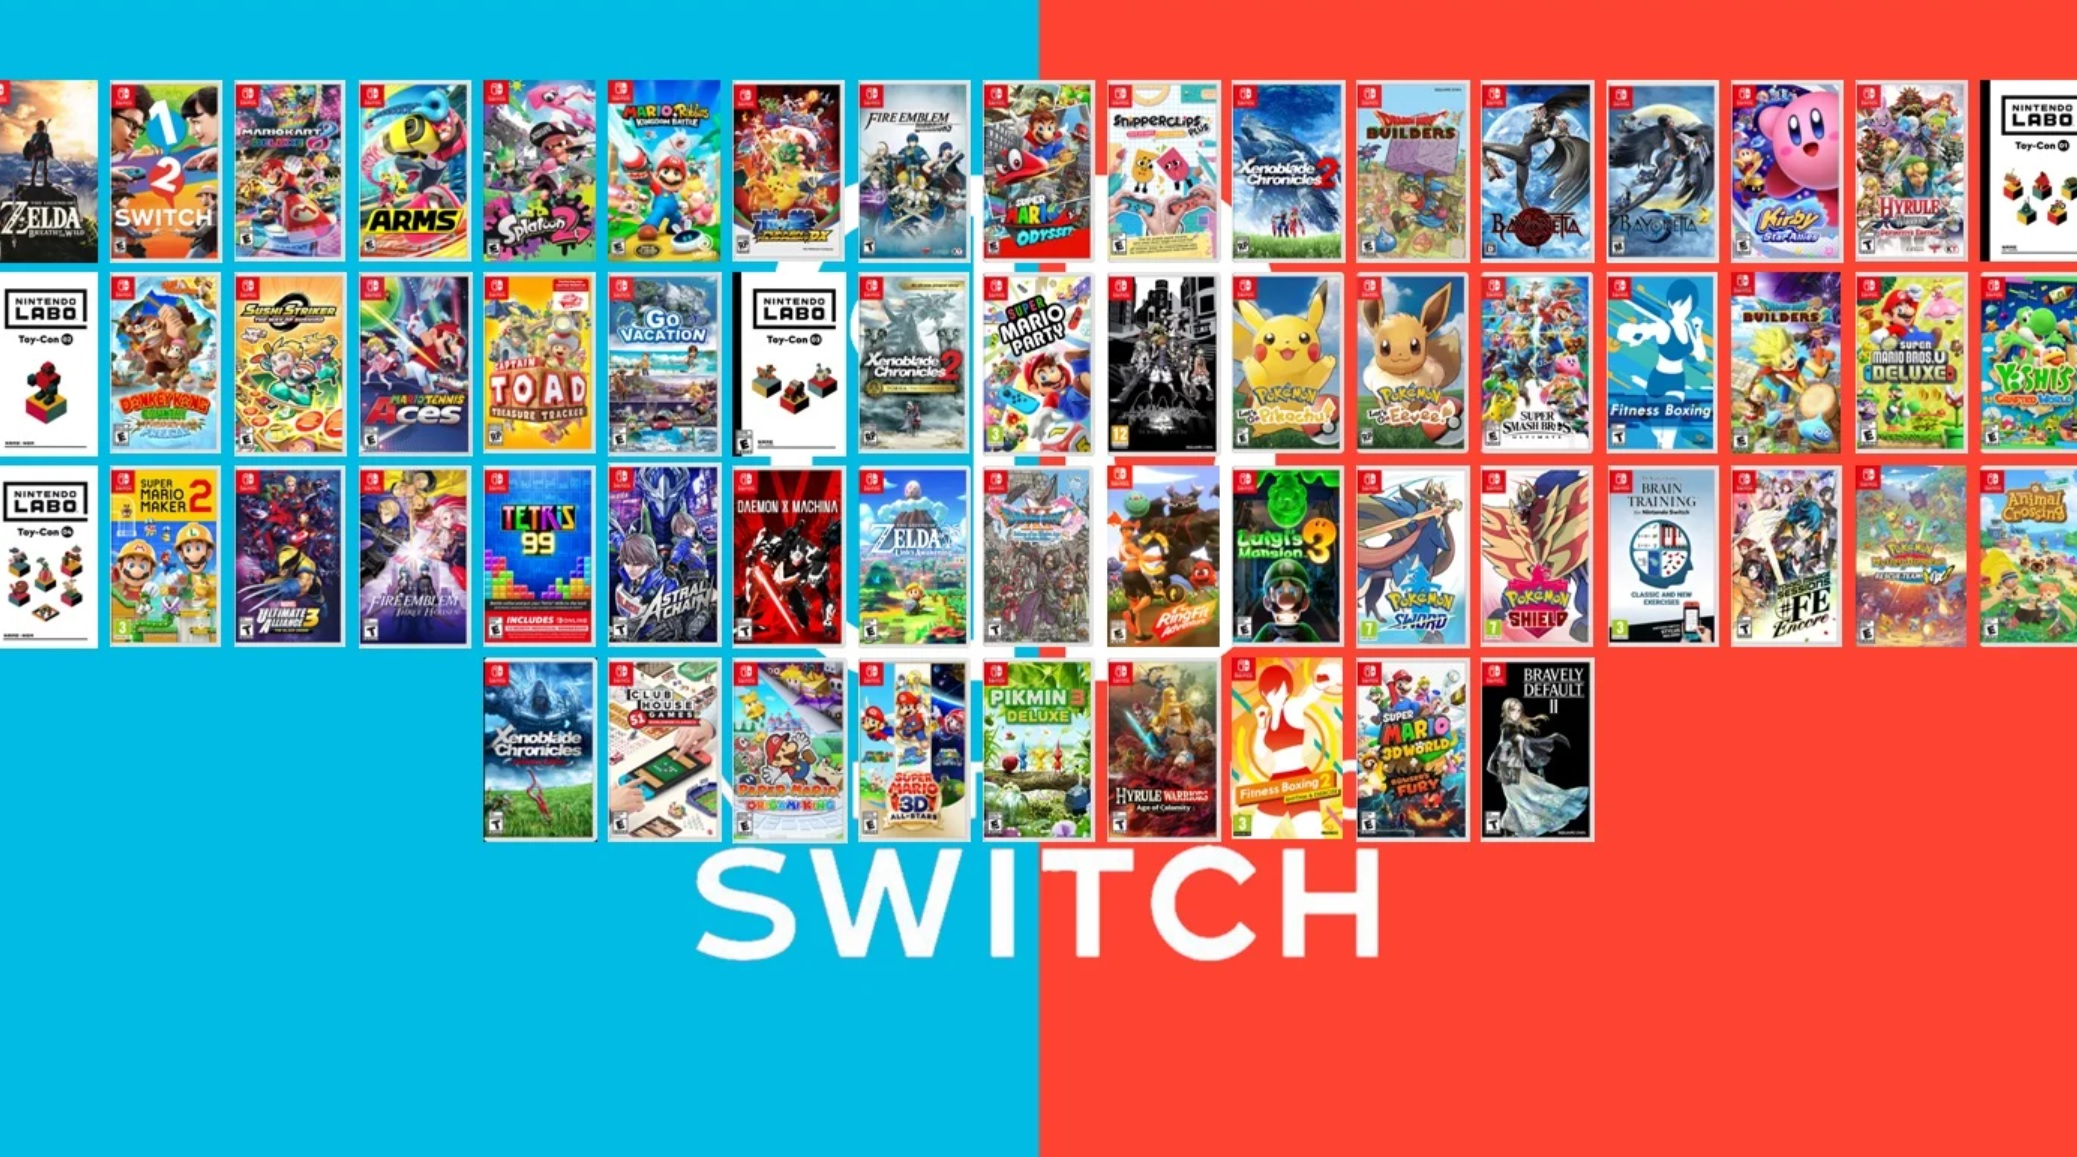 Nintendo is poised for a huge year for the Switch, with 'record software and hardware' sales screenshot